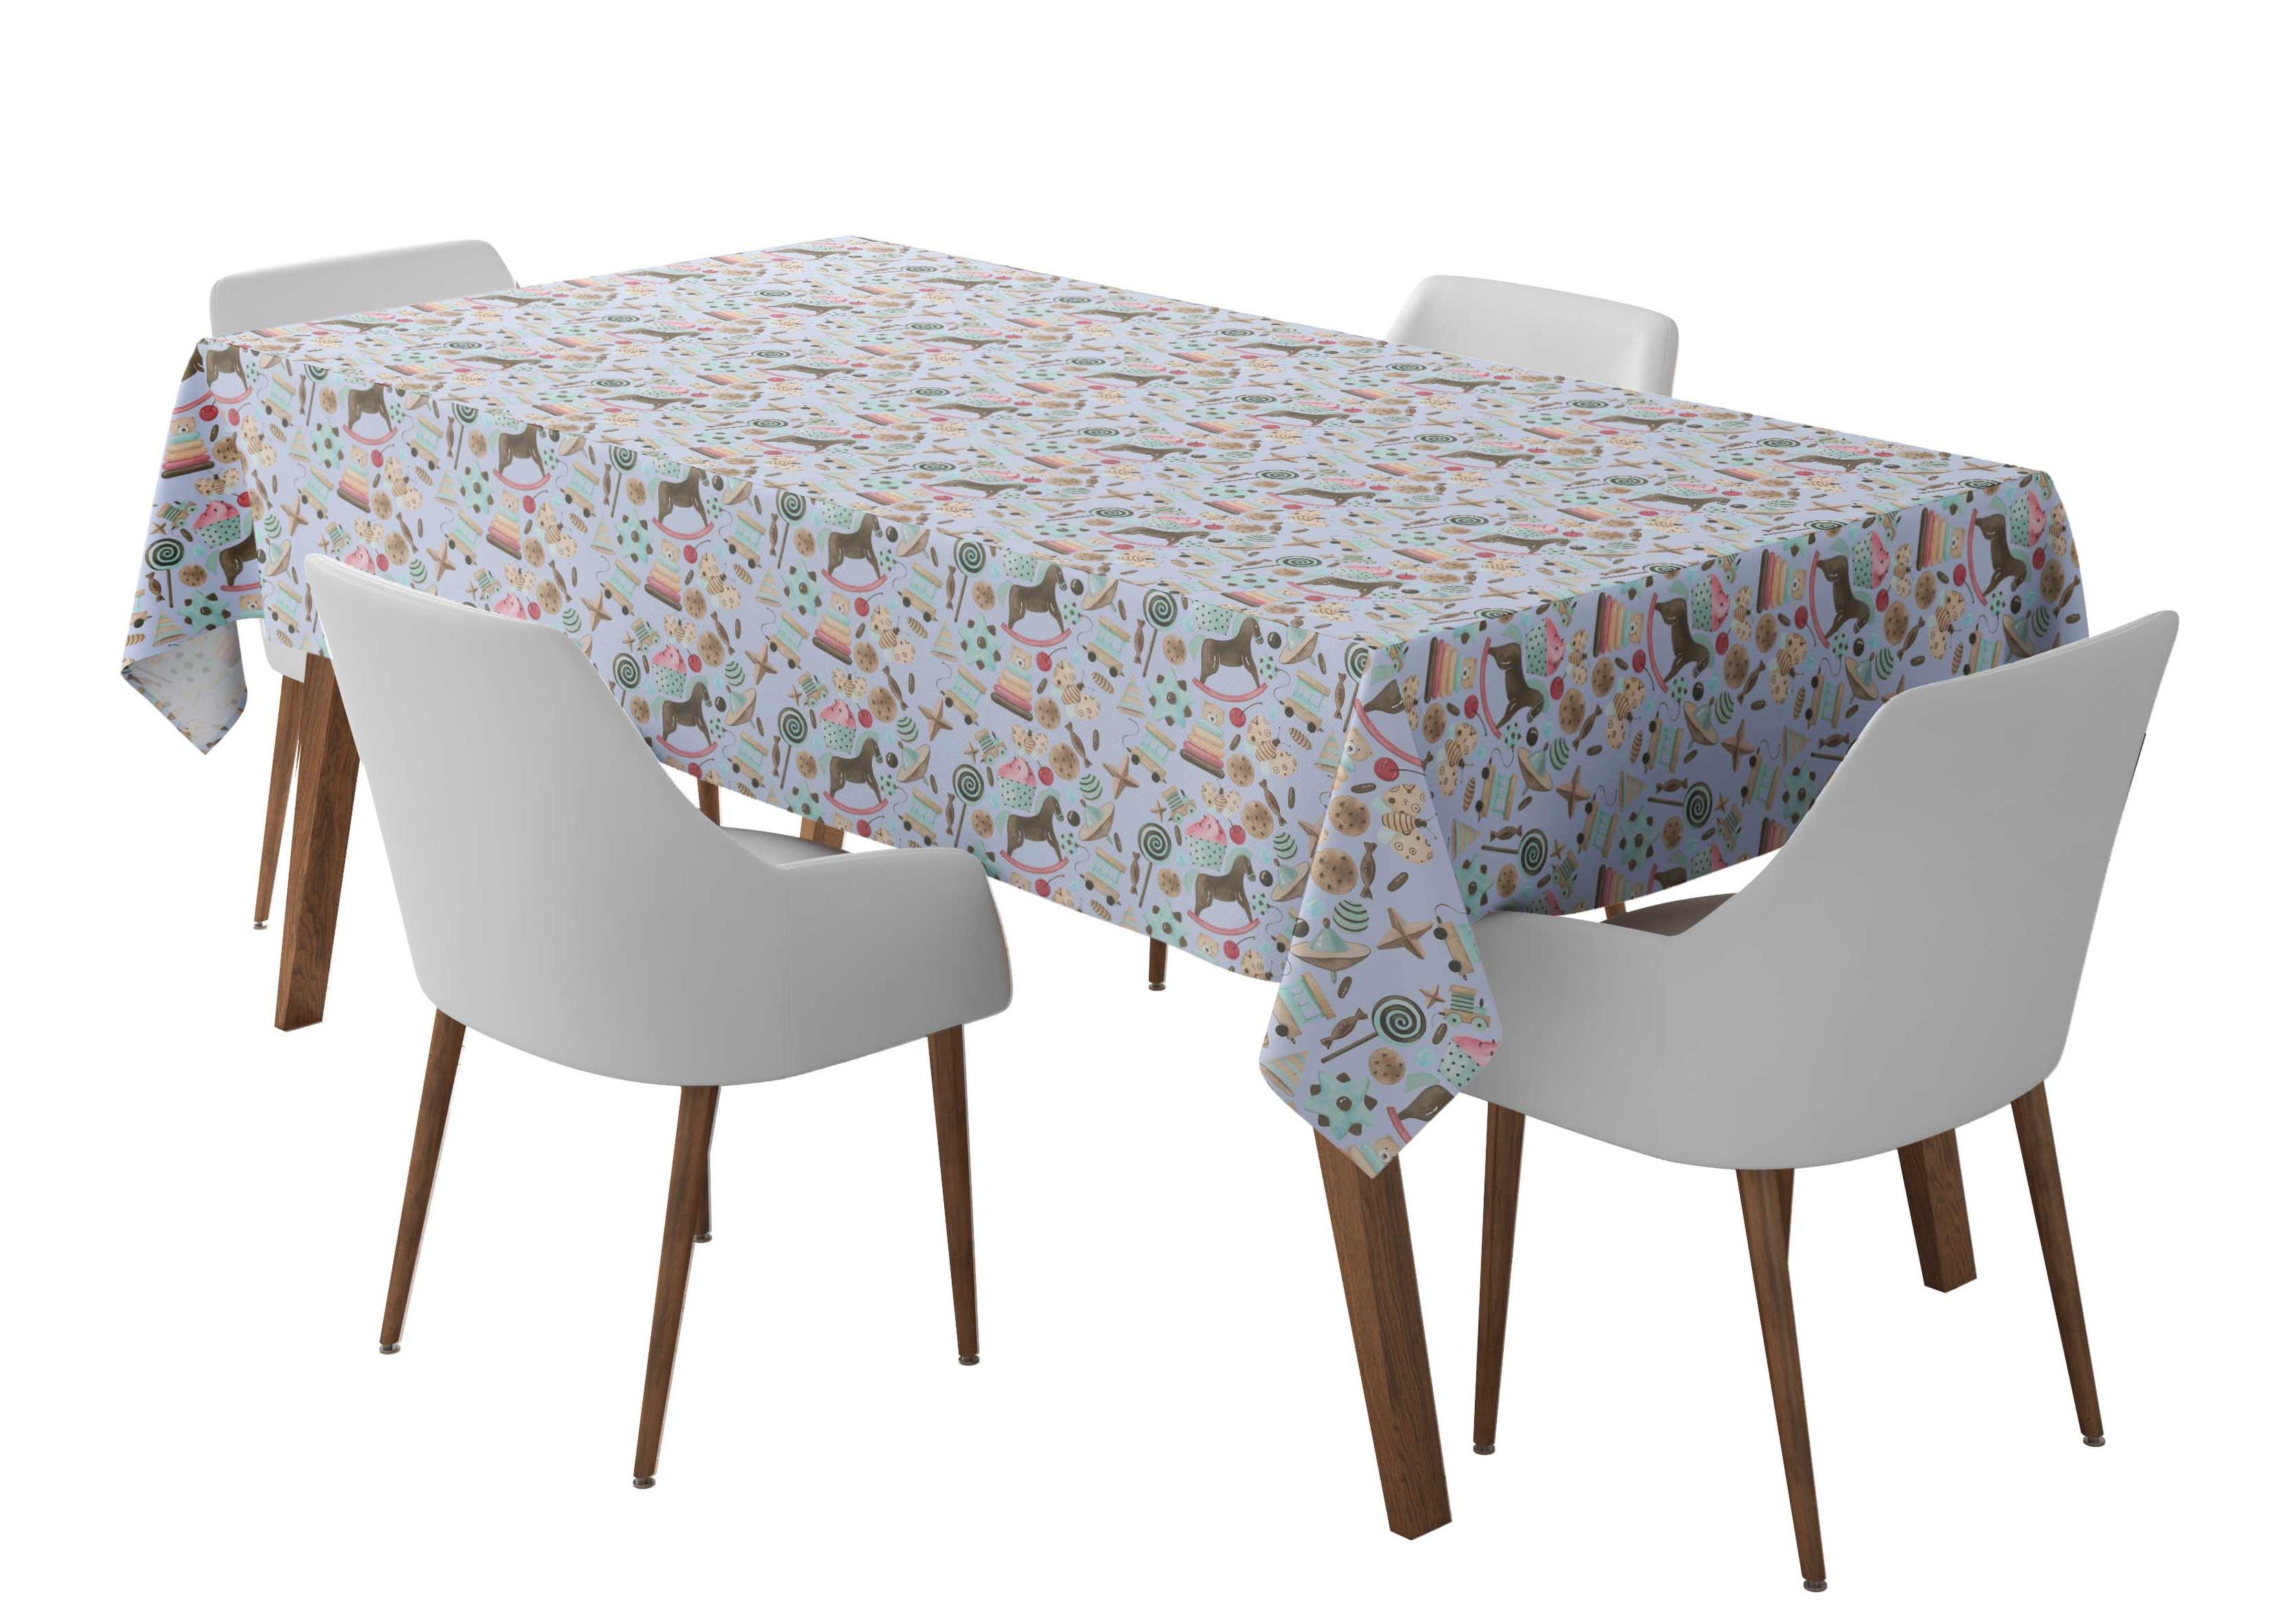 party theme outdoor dining table cover s